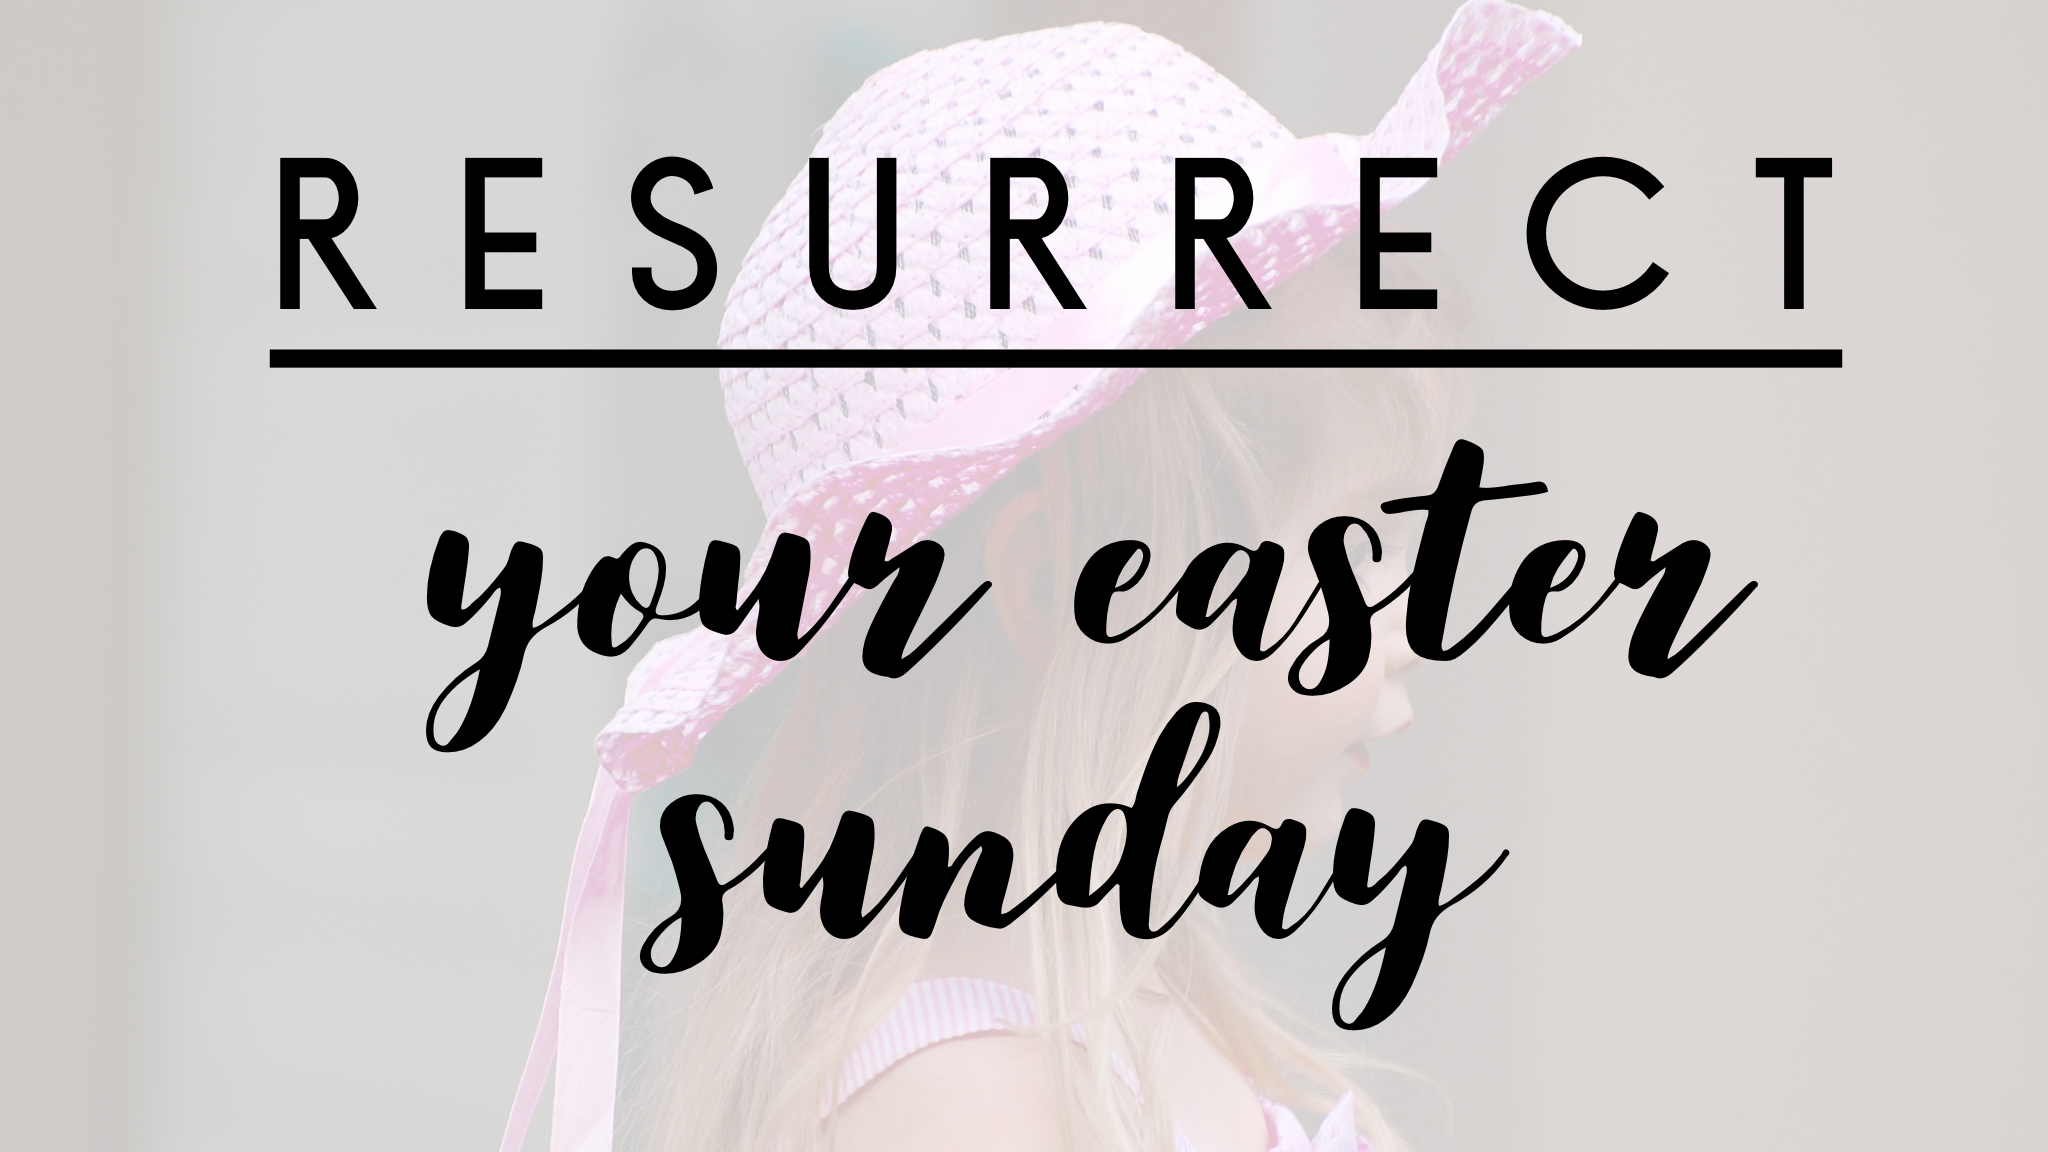 Resurrection on Easter Sunday